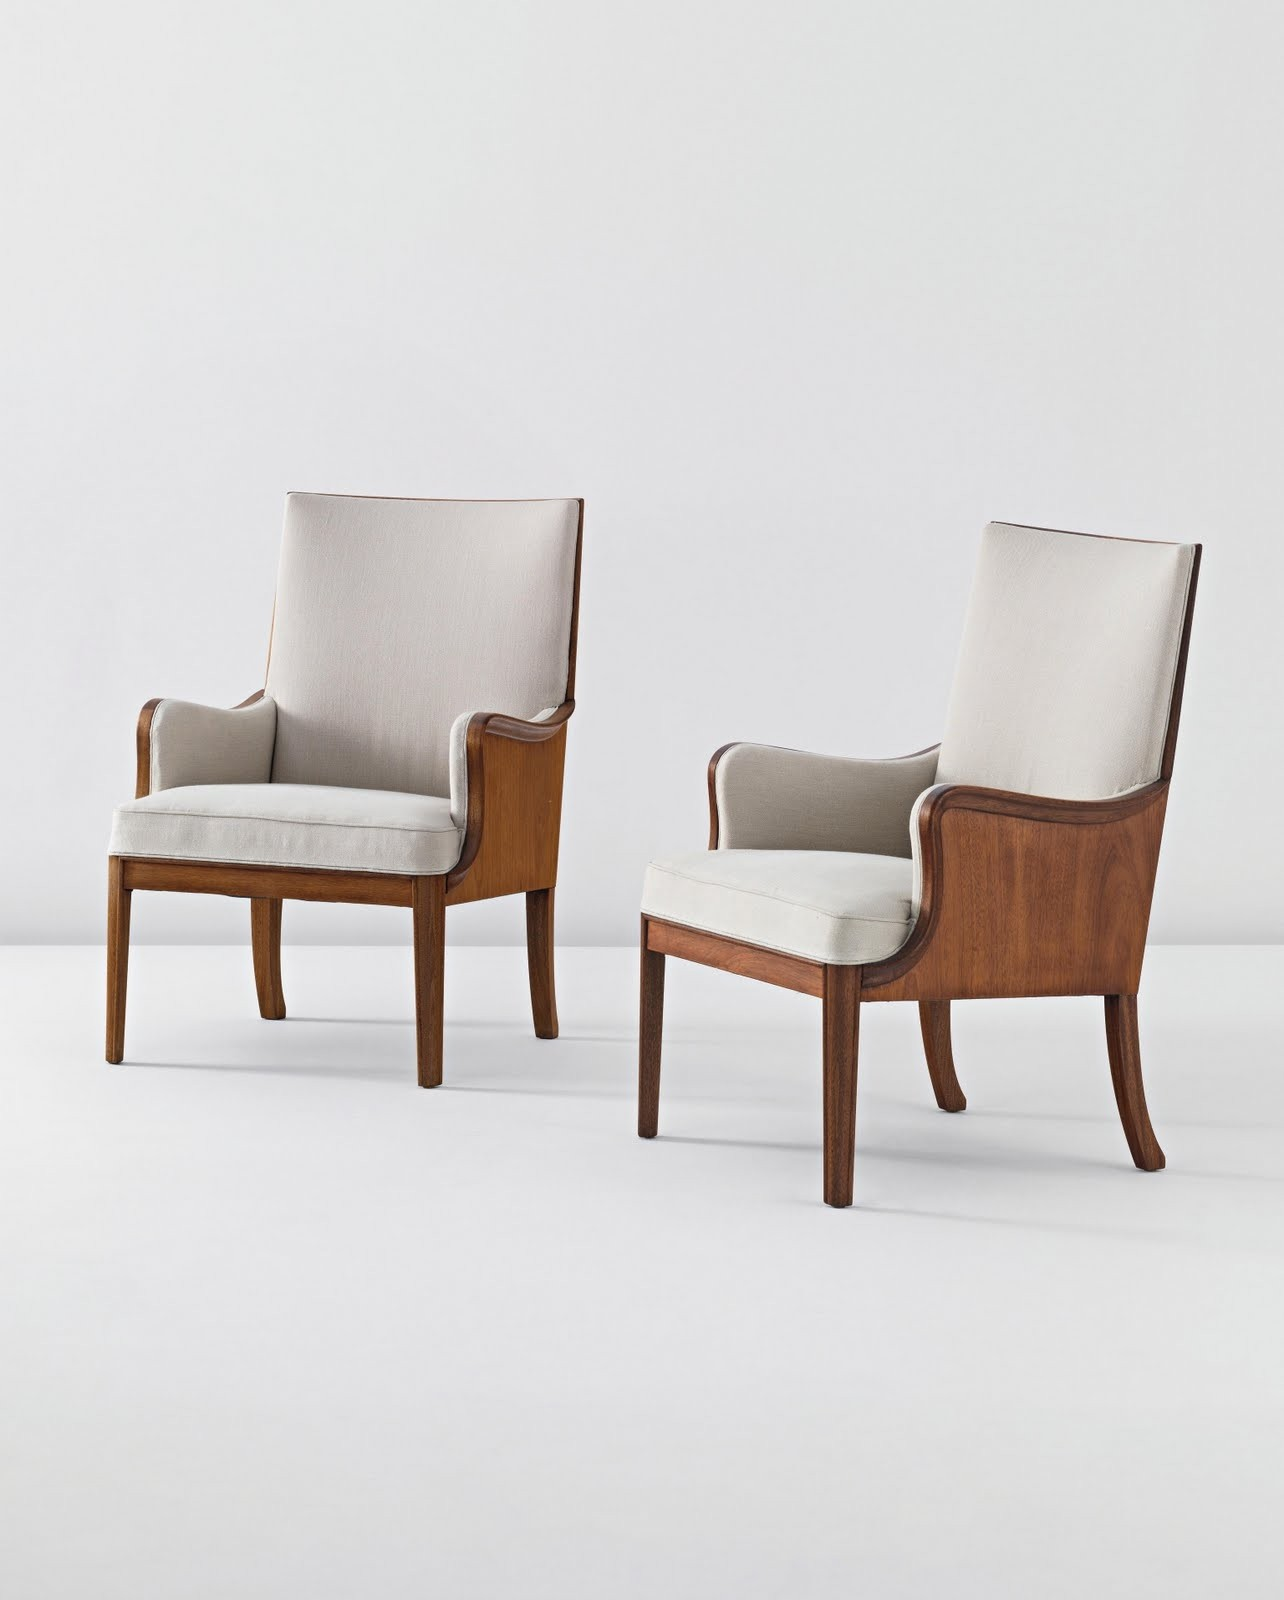 Merveilleux Chairs With High Seats